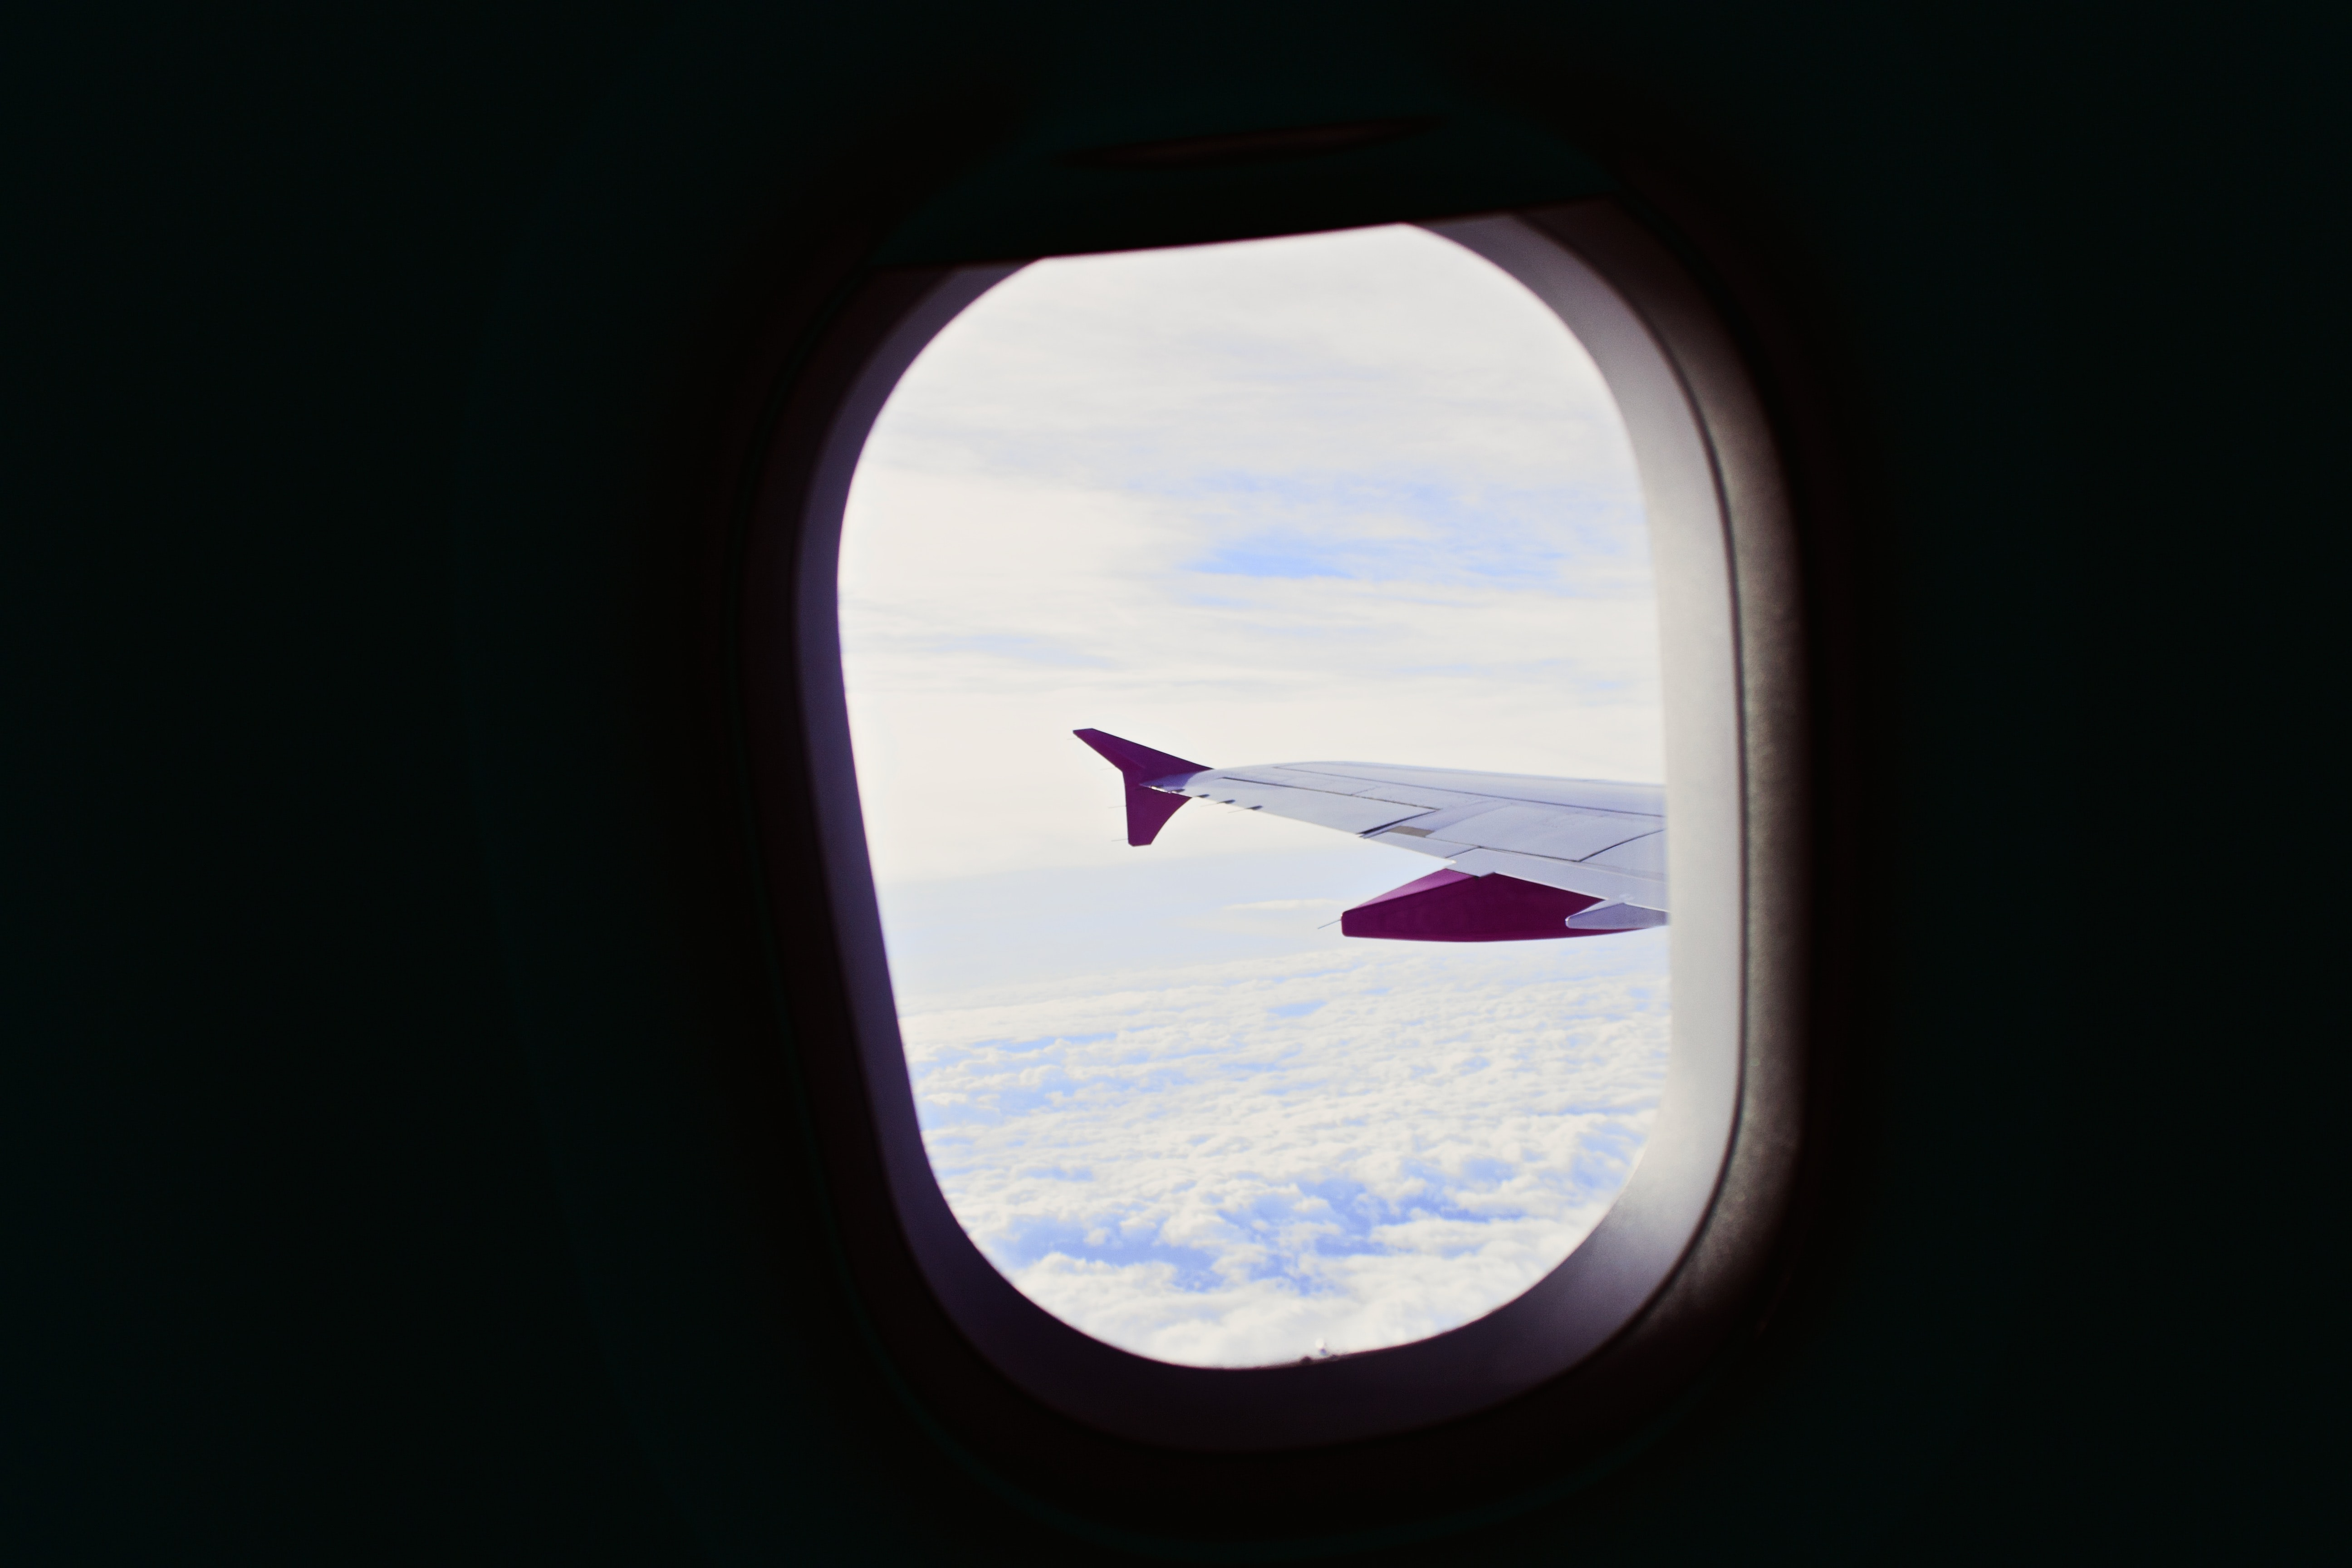 airliner wing through window